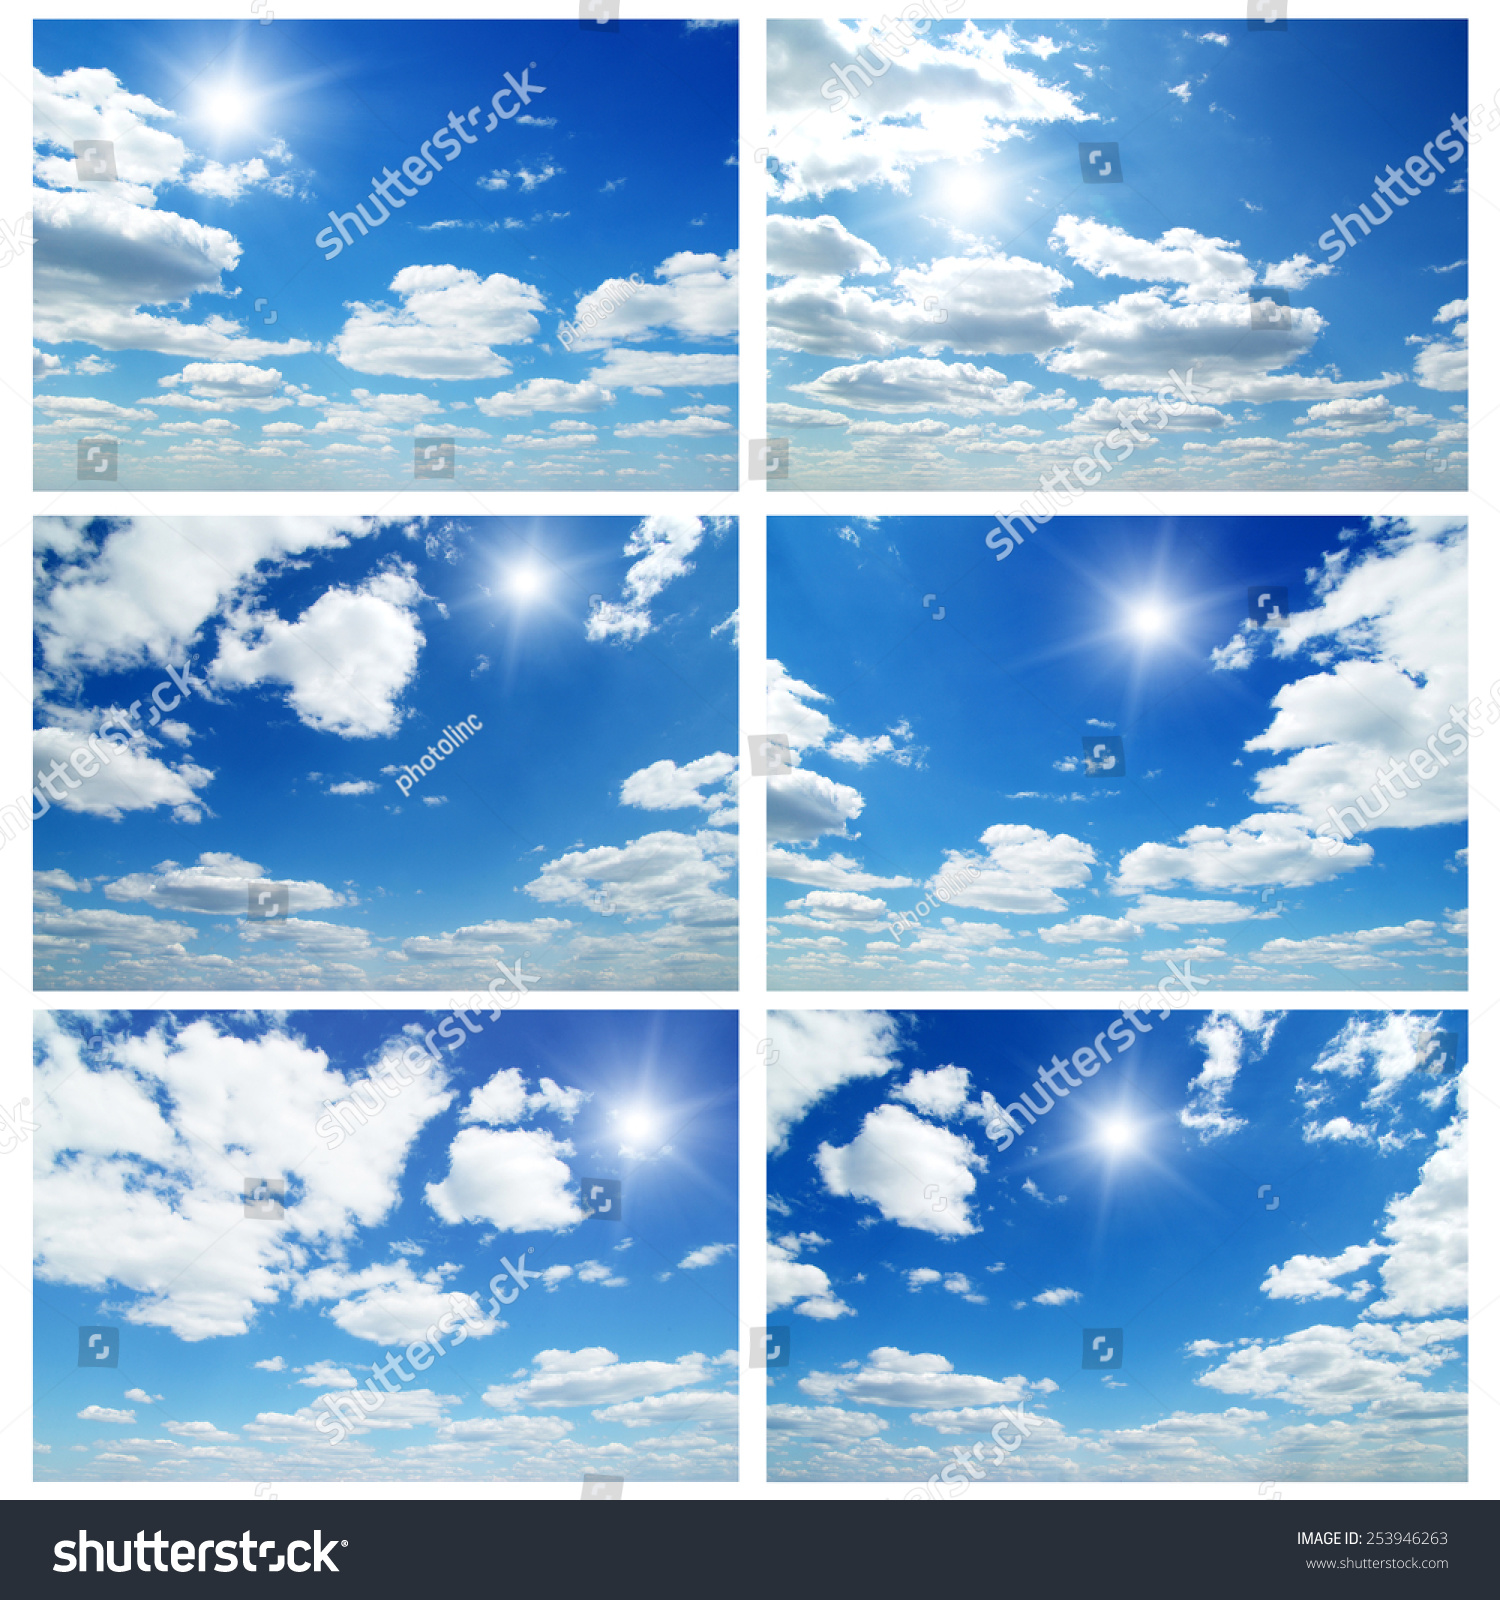 Sky daylight collection. Natural sky composition. Collage #253946263